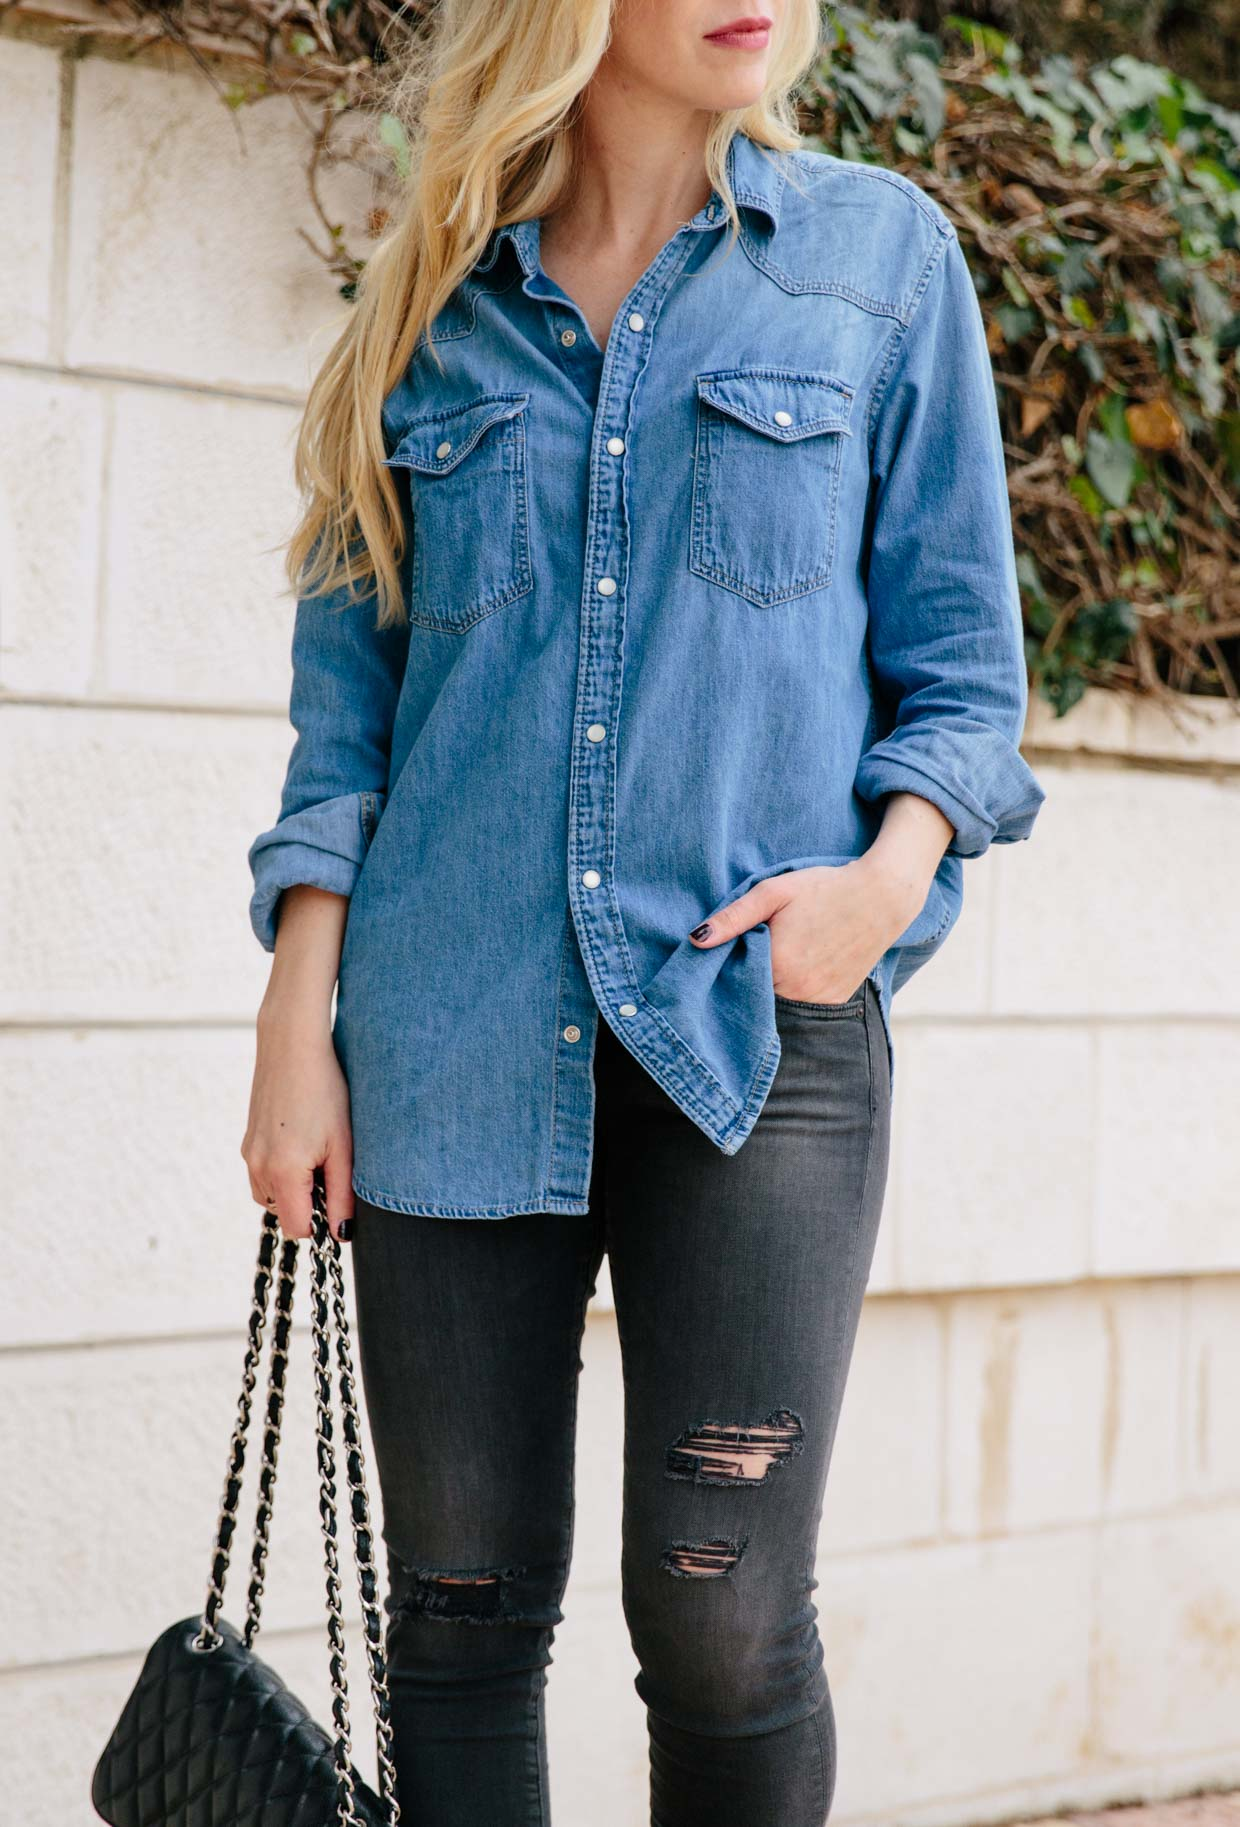 Outfit idea with denim shirt and black distressed jeans